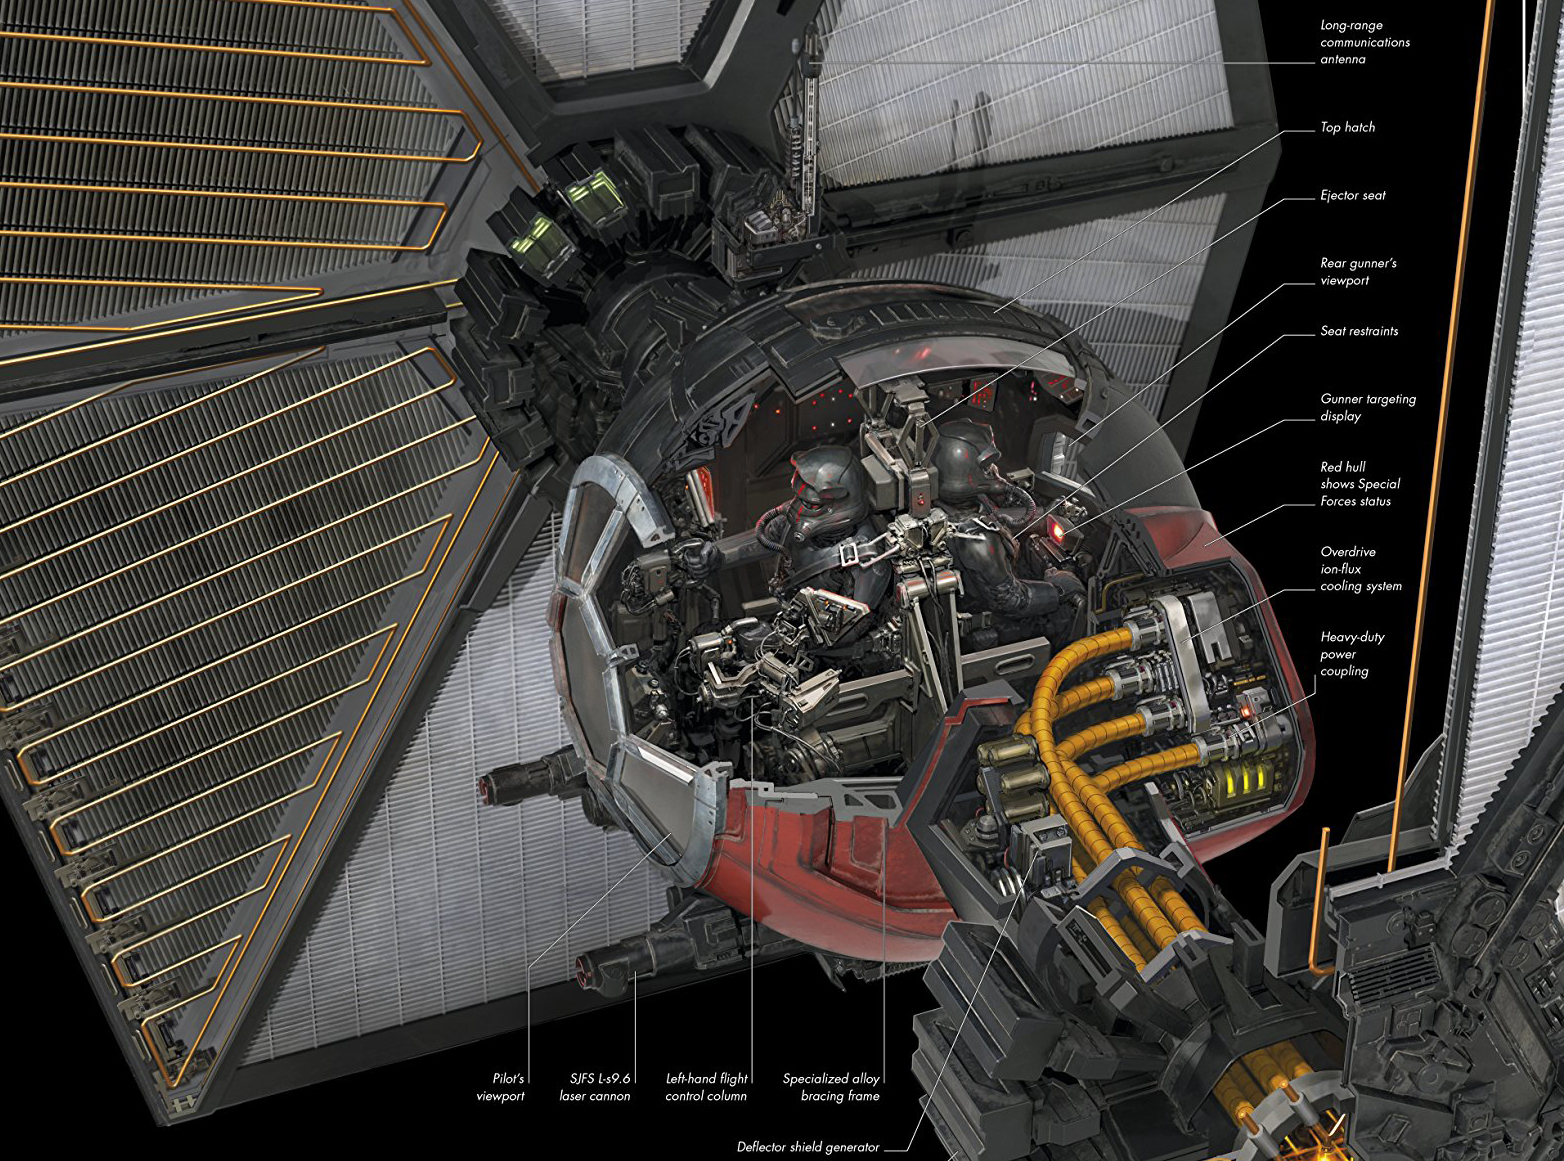 Sf_space_superiority_fighter_cross-secti